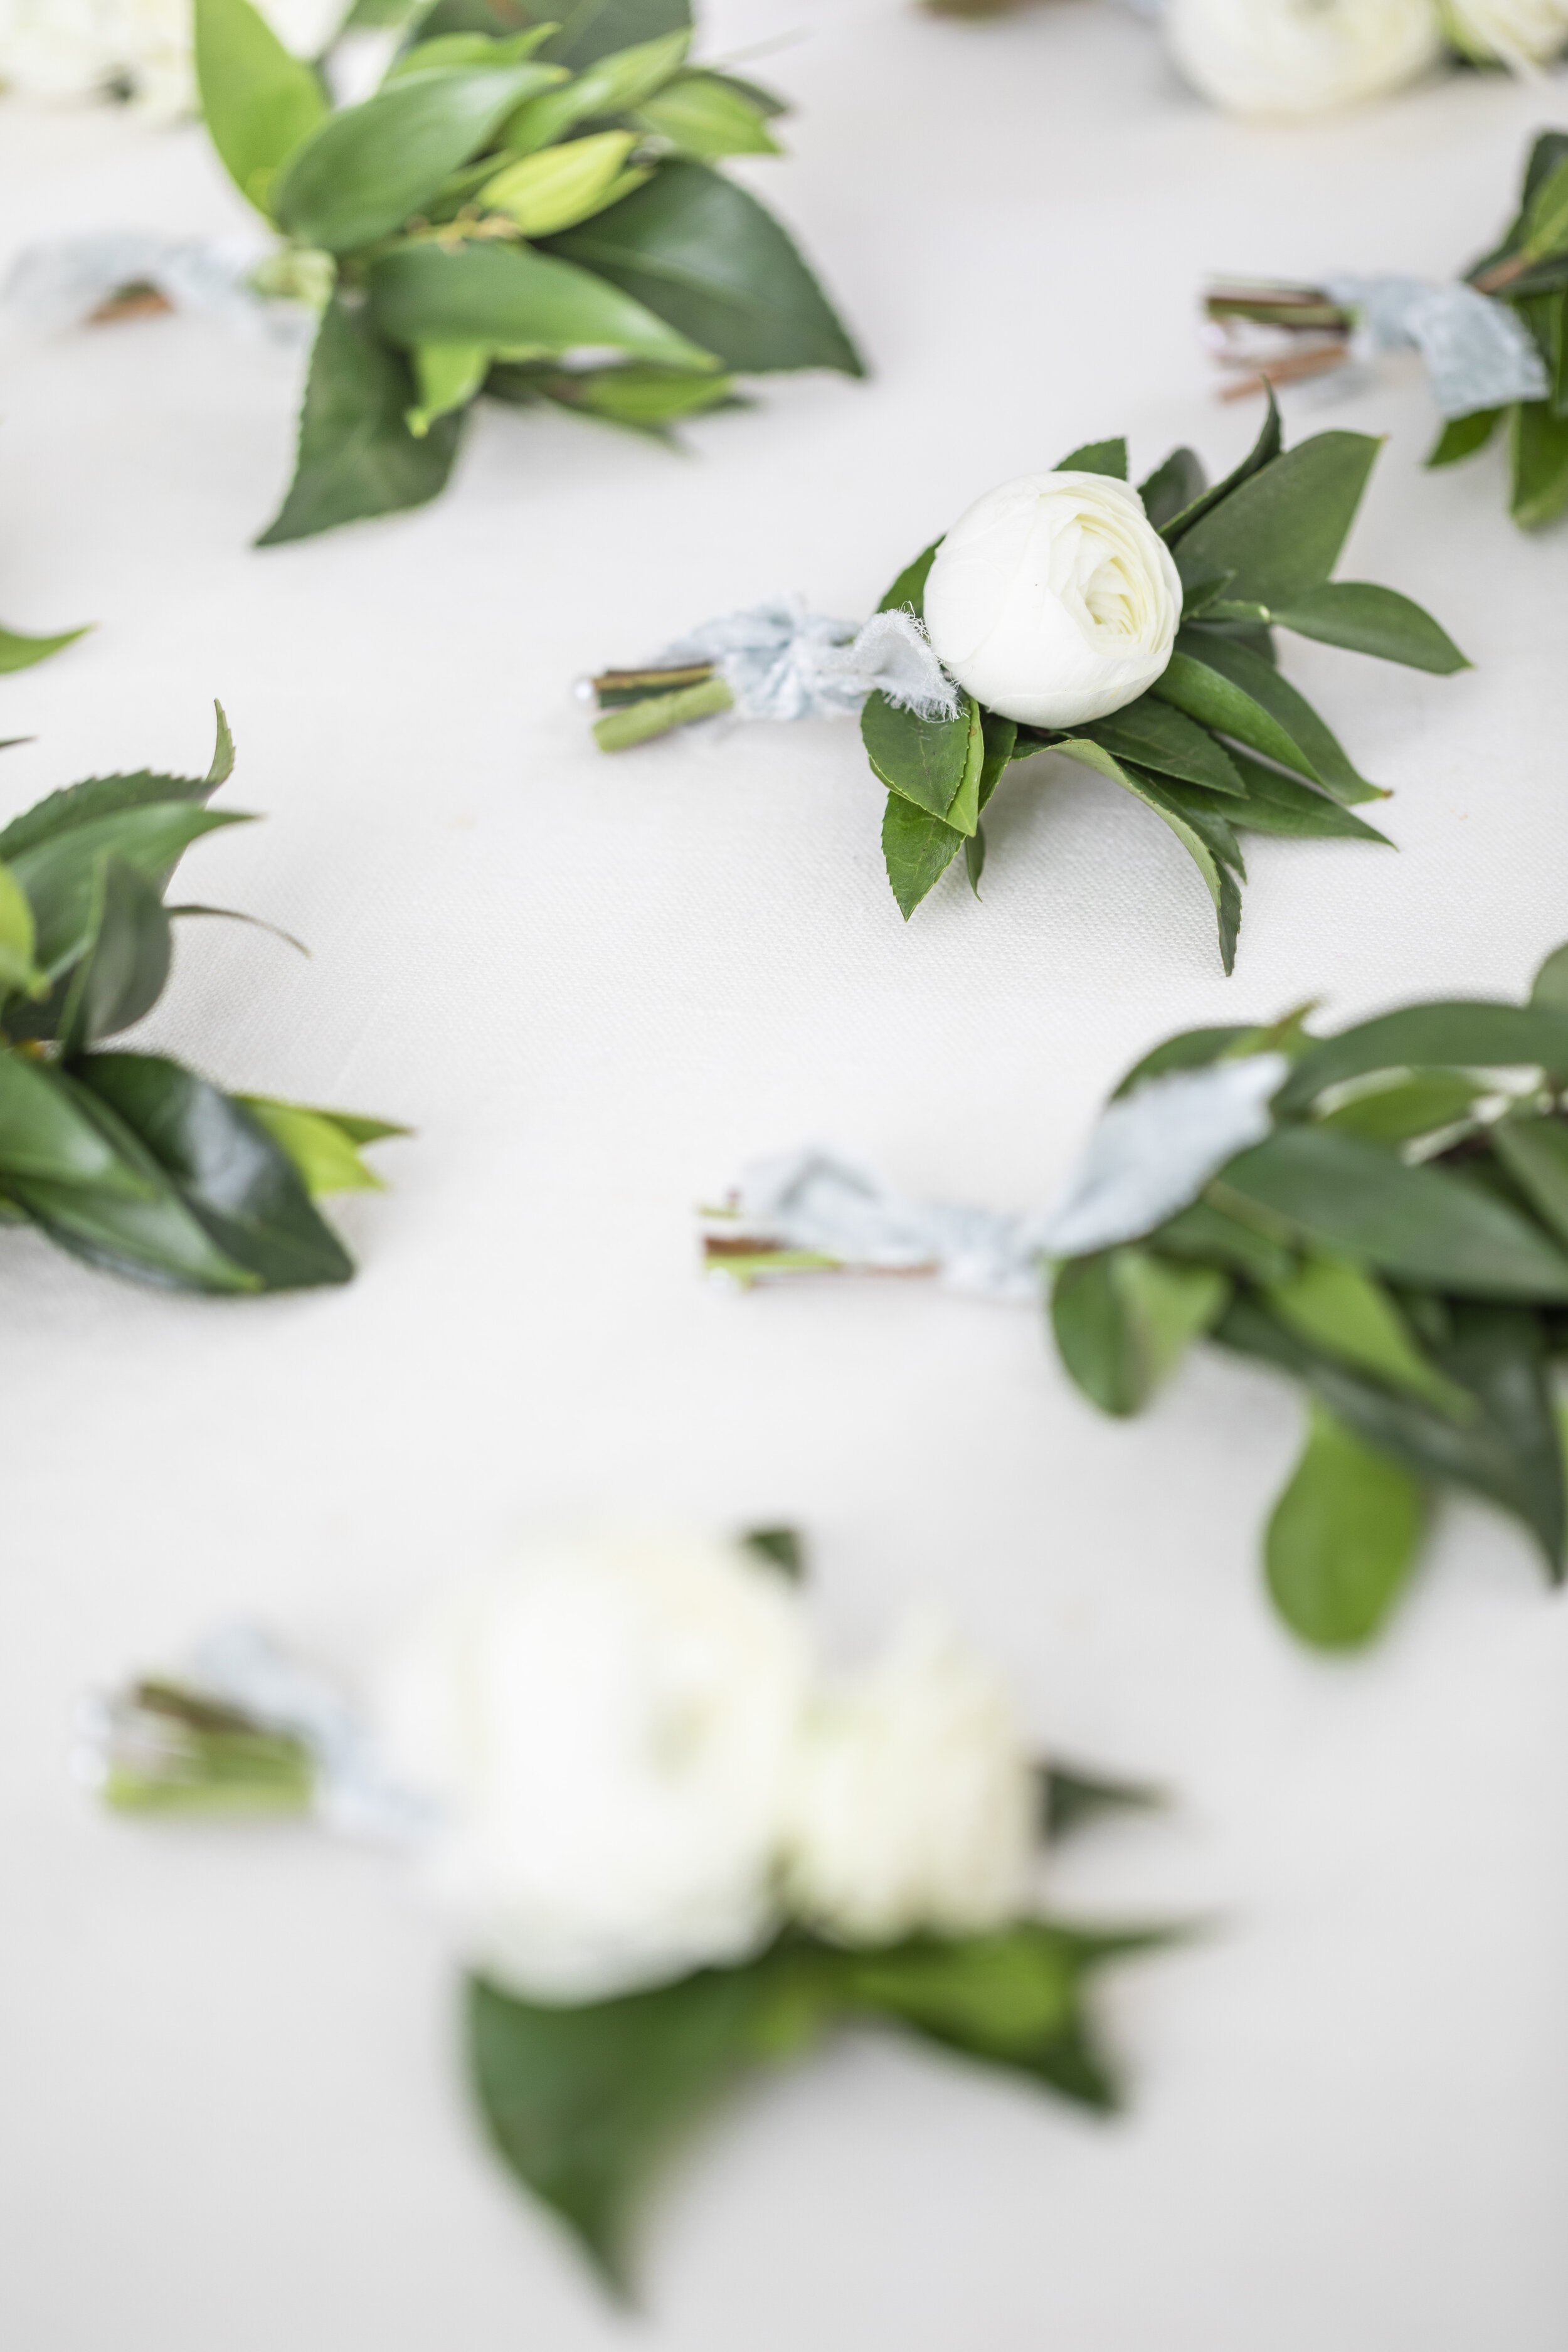 simple elegant one white flower boutonniere inspiration wedding day inspiration wedding boutonniere goals beautiful boutonniere simple and elegant florist goals wedding goals reach out to your florist three to four months before your beautiful big day florist tips tricks and hacks #floristtips #tipsandtricks #vendorspotlight #blushingrosefloral #florist #utahcounty #wedding #inspiration #help #flowers